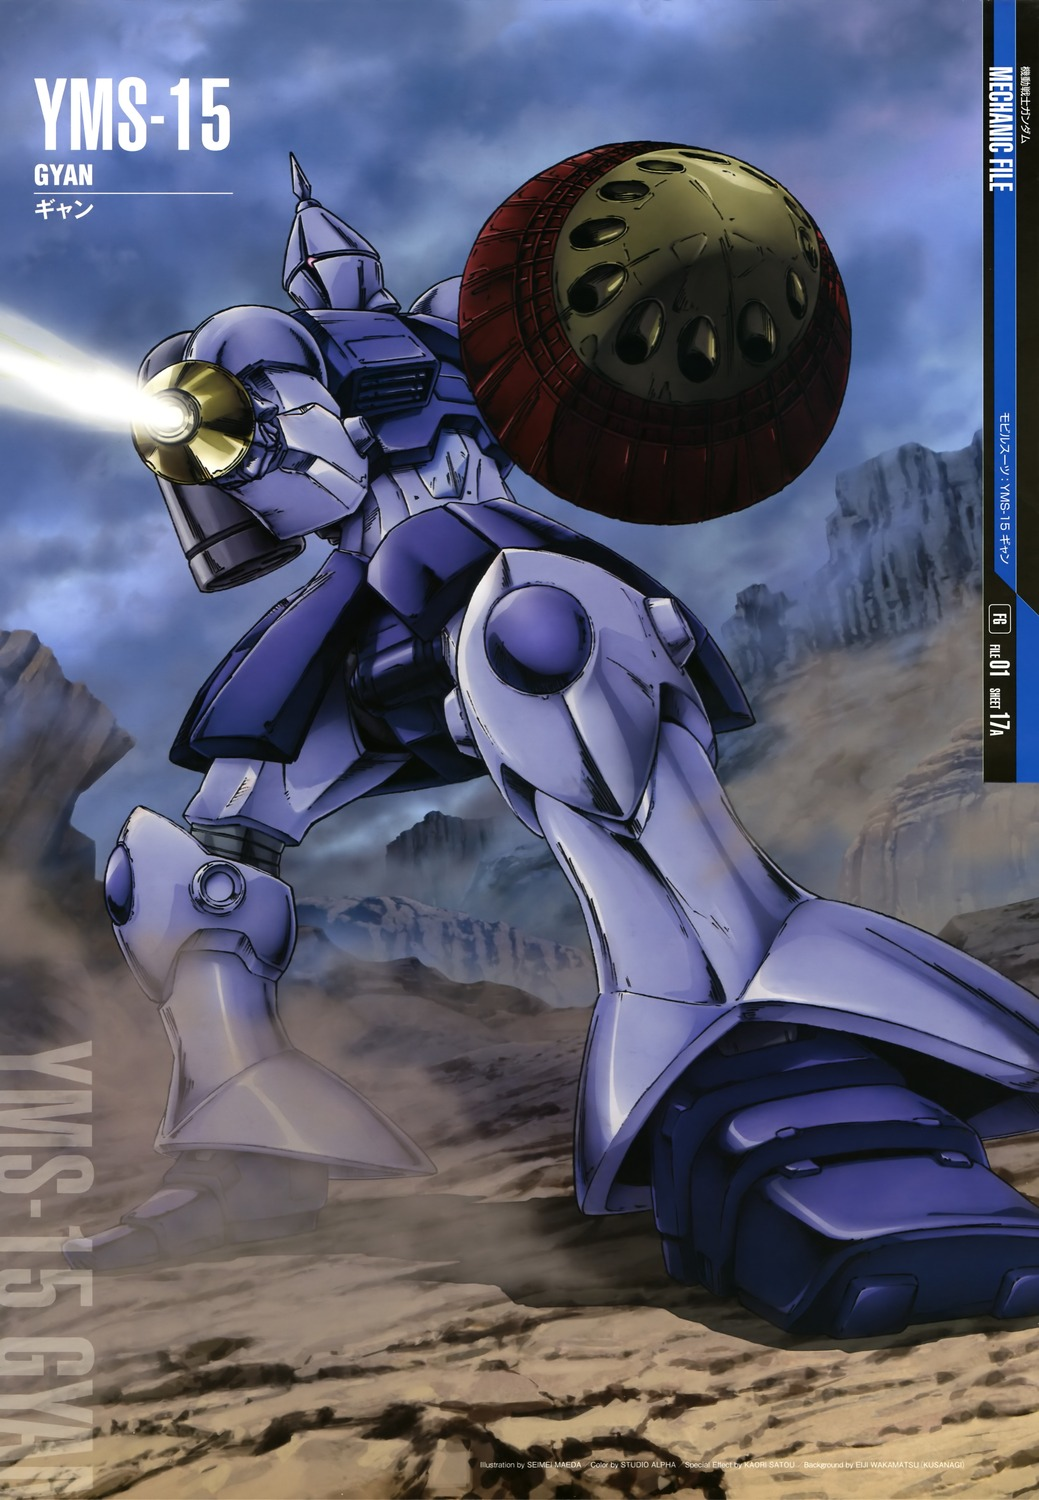 Custom Anime Wallpaper Gundam Mechanic File Posters Gundam Kits Collection News